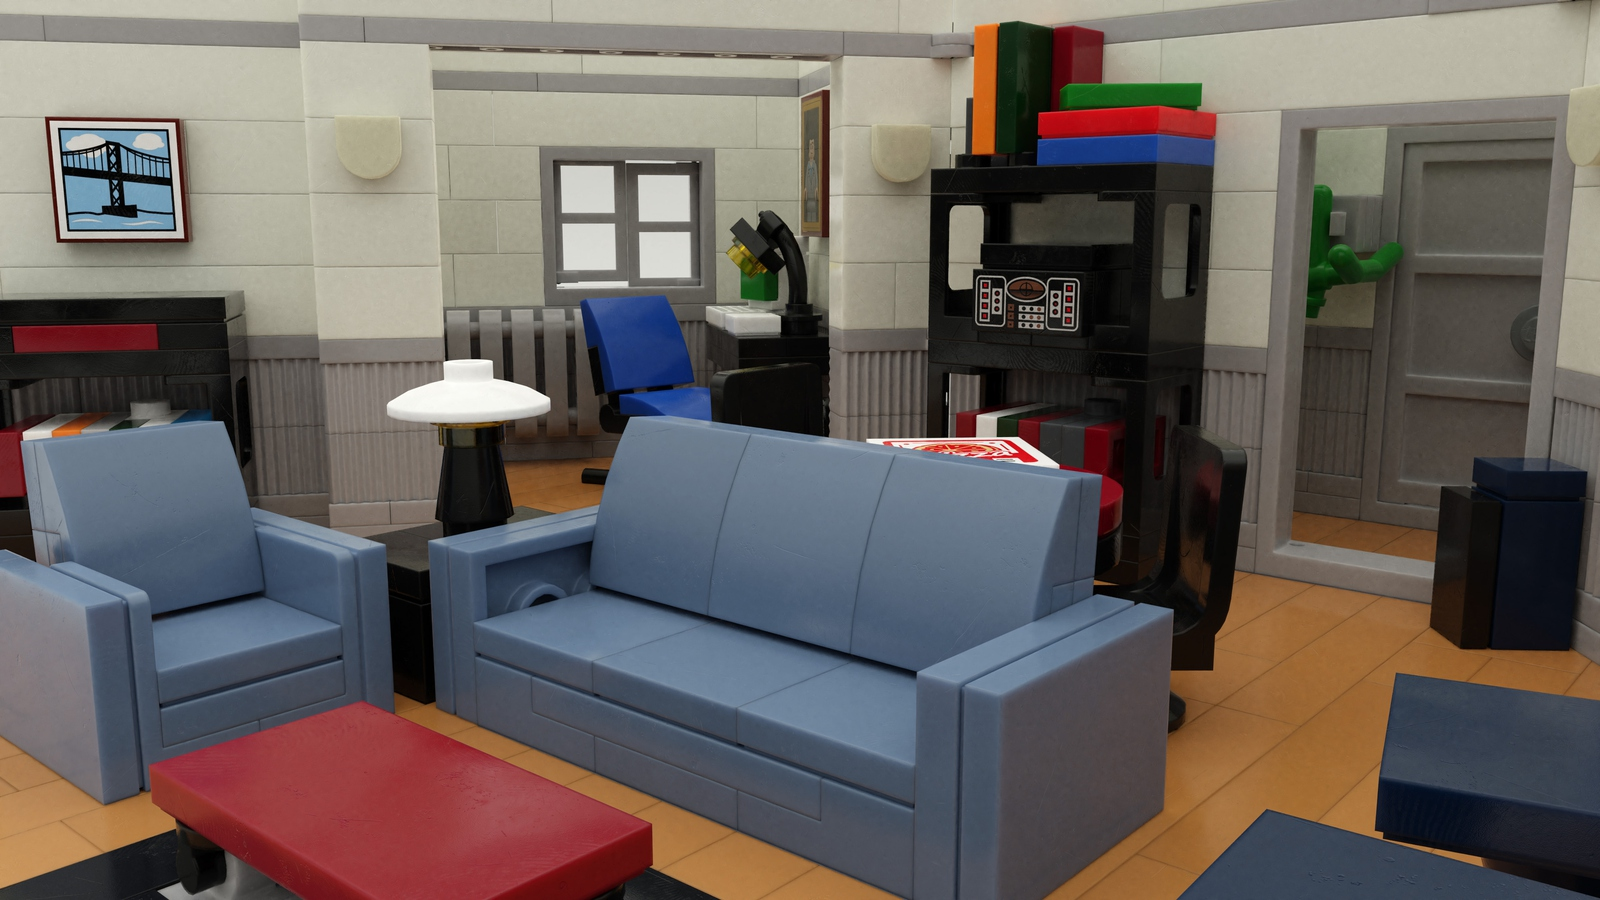 Jerry Seinfeld's Upper West Side Manhattan apartment in LEGO